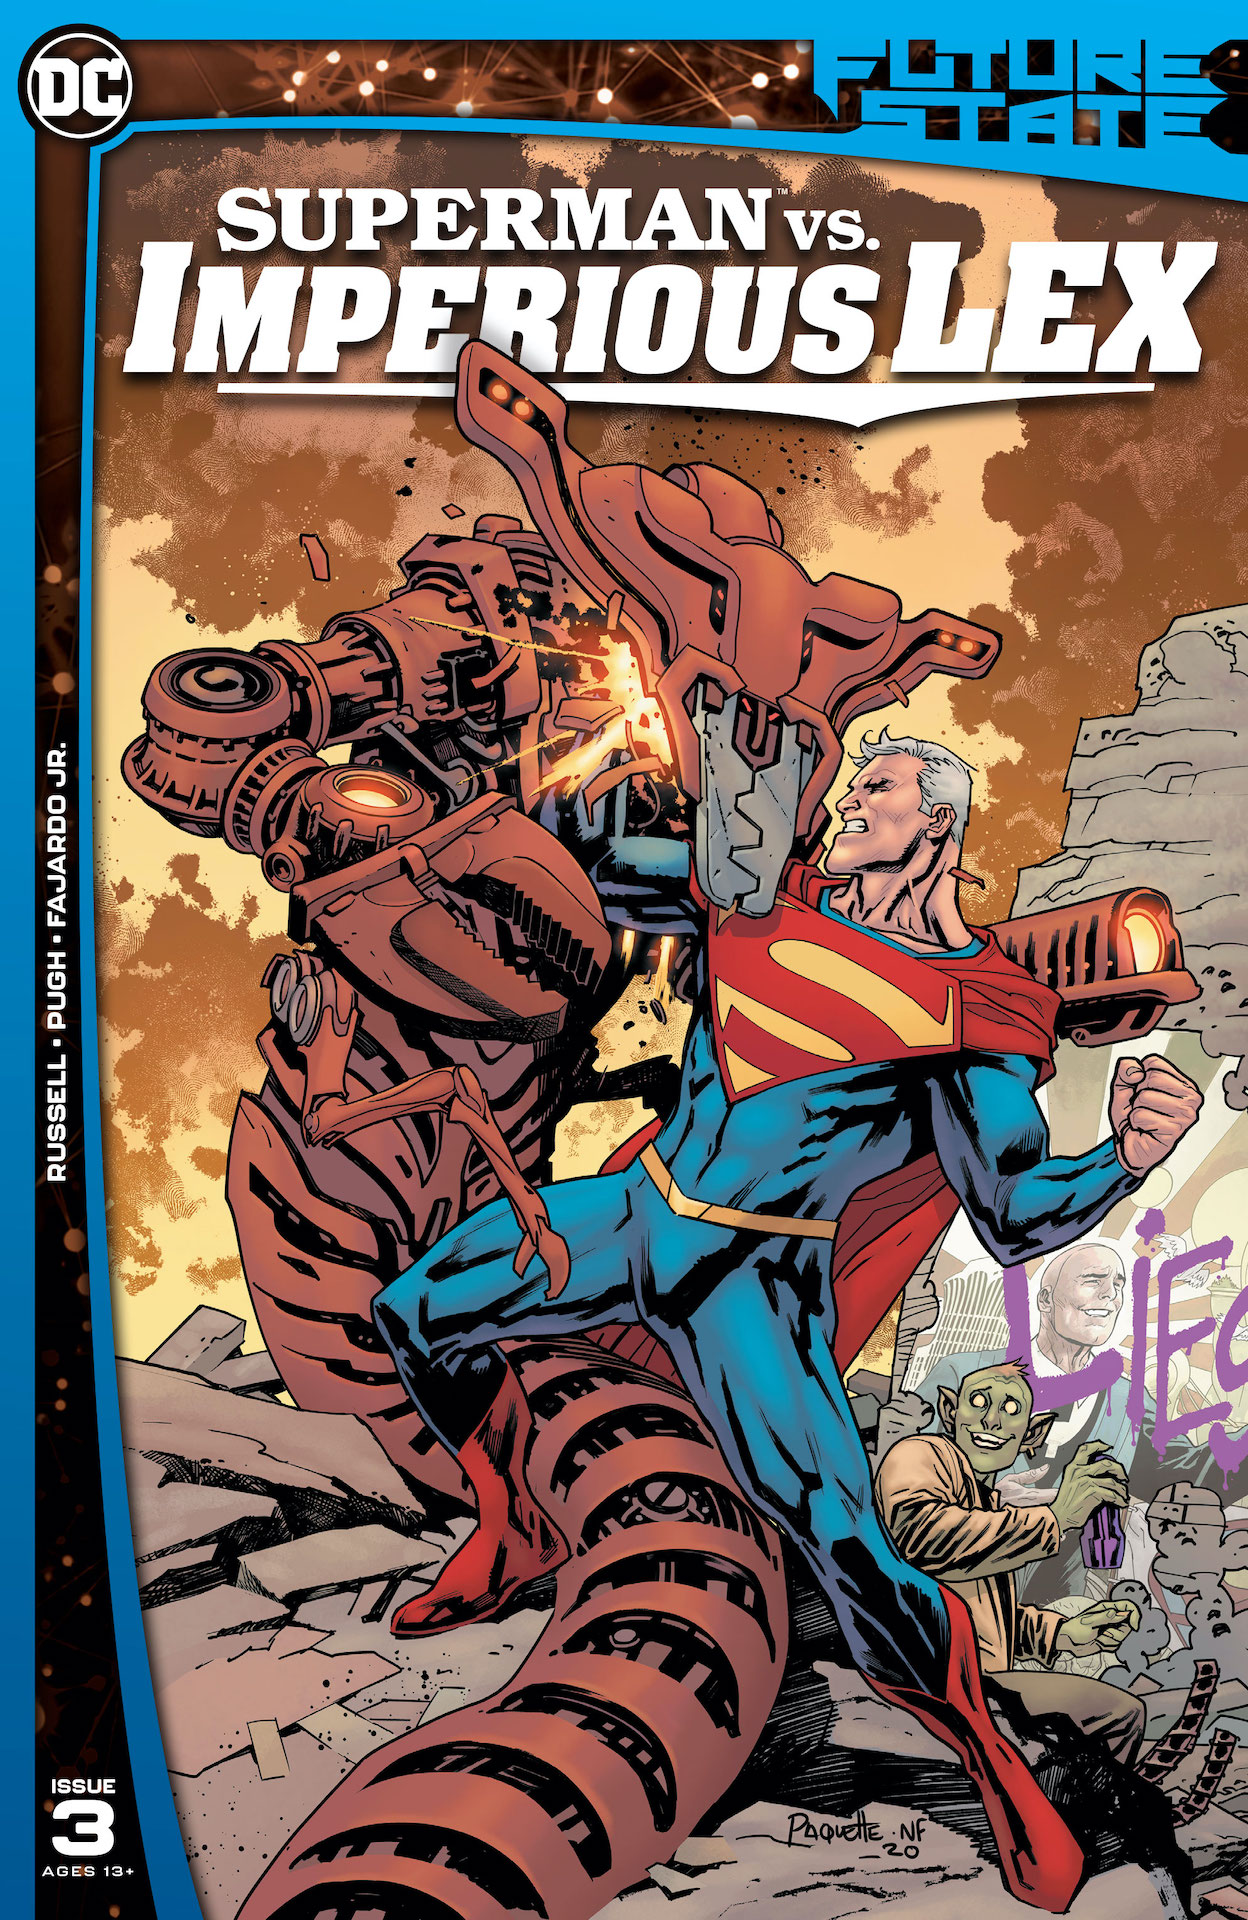 DC Preview: Future State #3: Superman vs. Imperious Lex